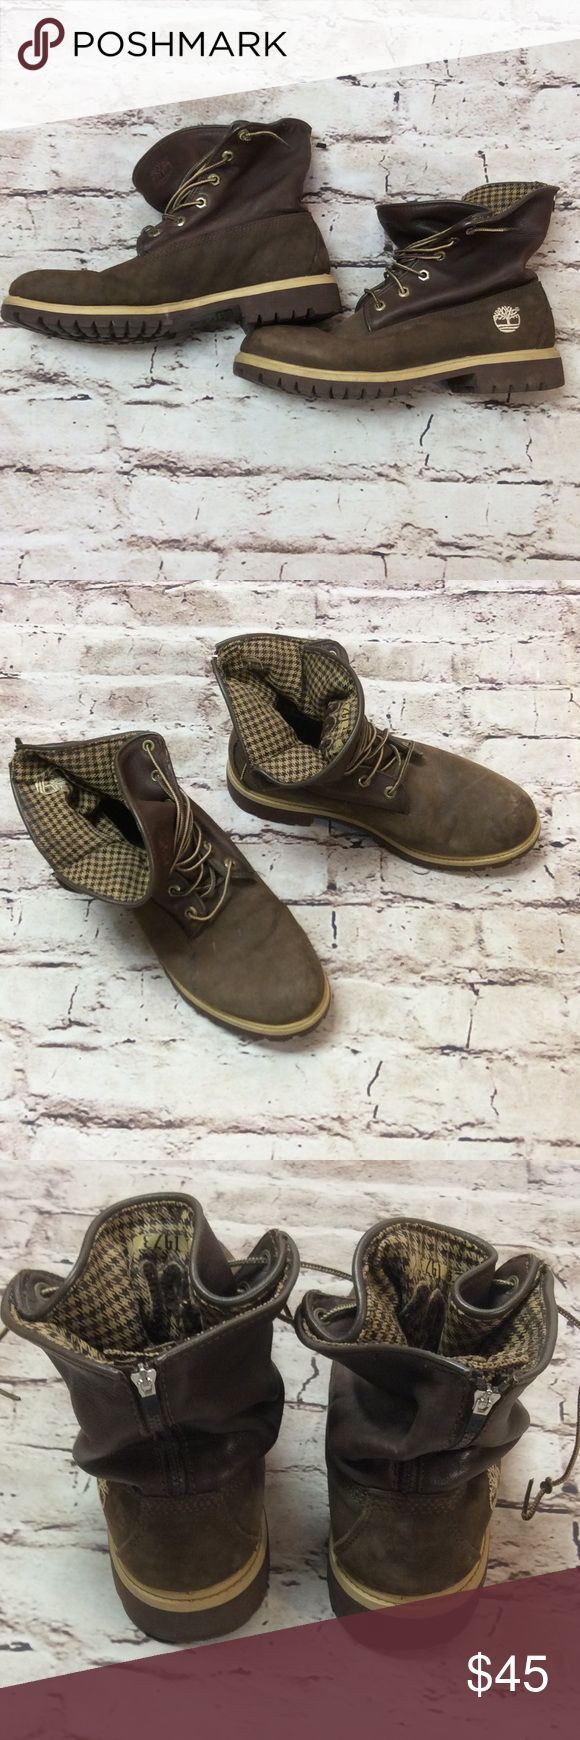 "MEN'S TIMBERLAND ROLL TOP LEATHER BOOTS Great pair of stylish boots with a houndstooth roll top. Wear up or down. Lace tie and zip back. Distressed look from wear but no damage to leather. The size isn't my inside but inside footbed length is 11"" Timberland Shoes Boots"